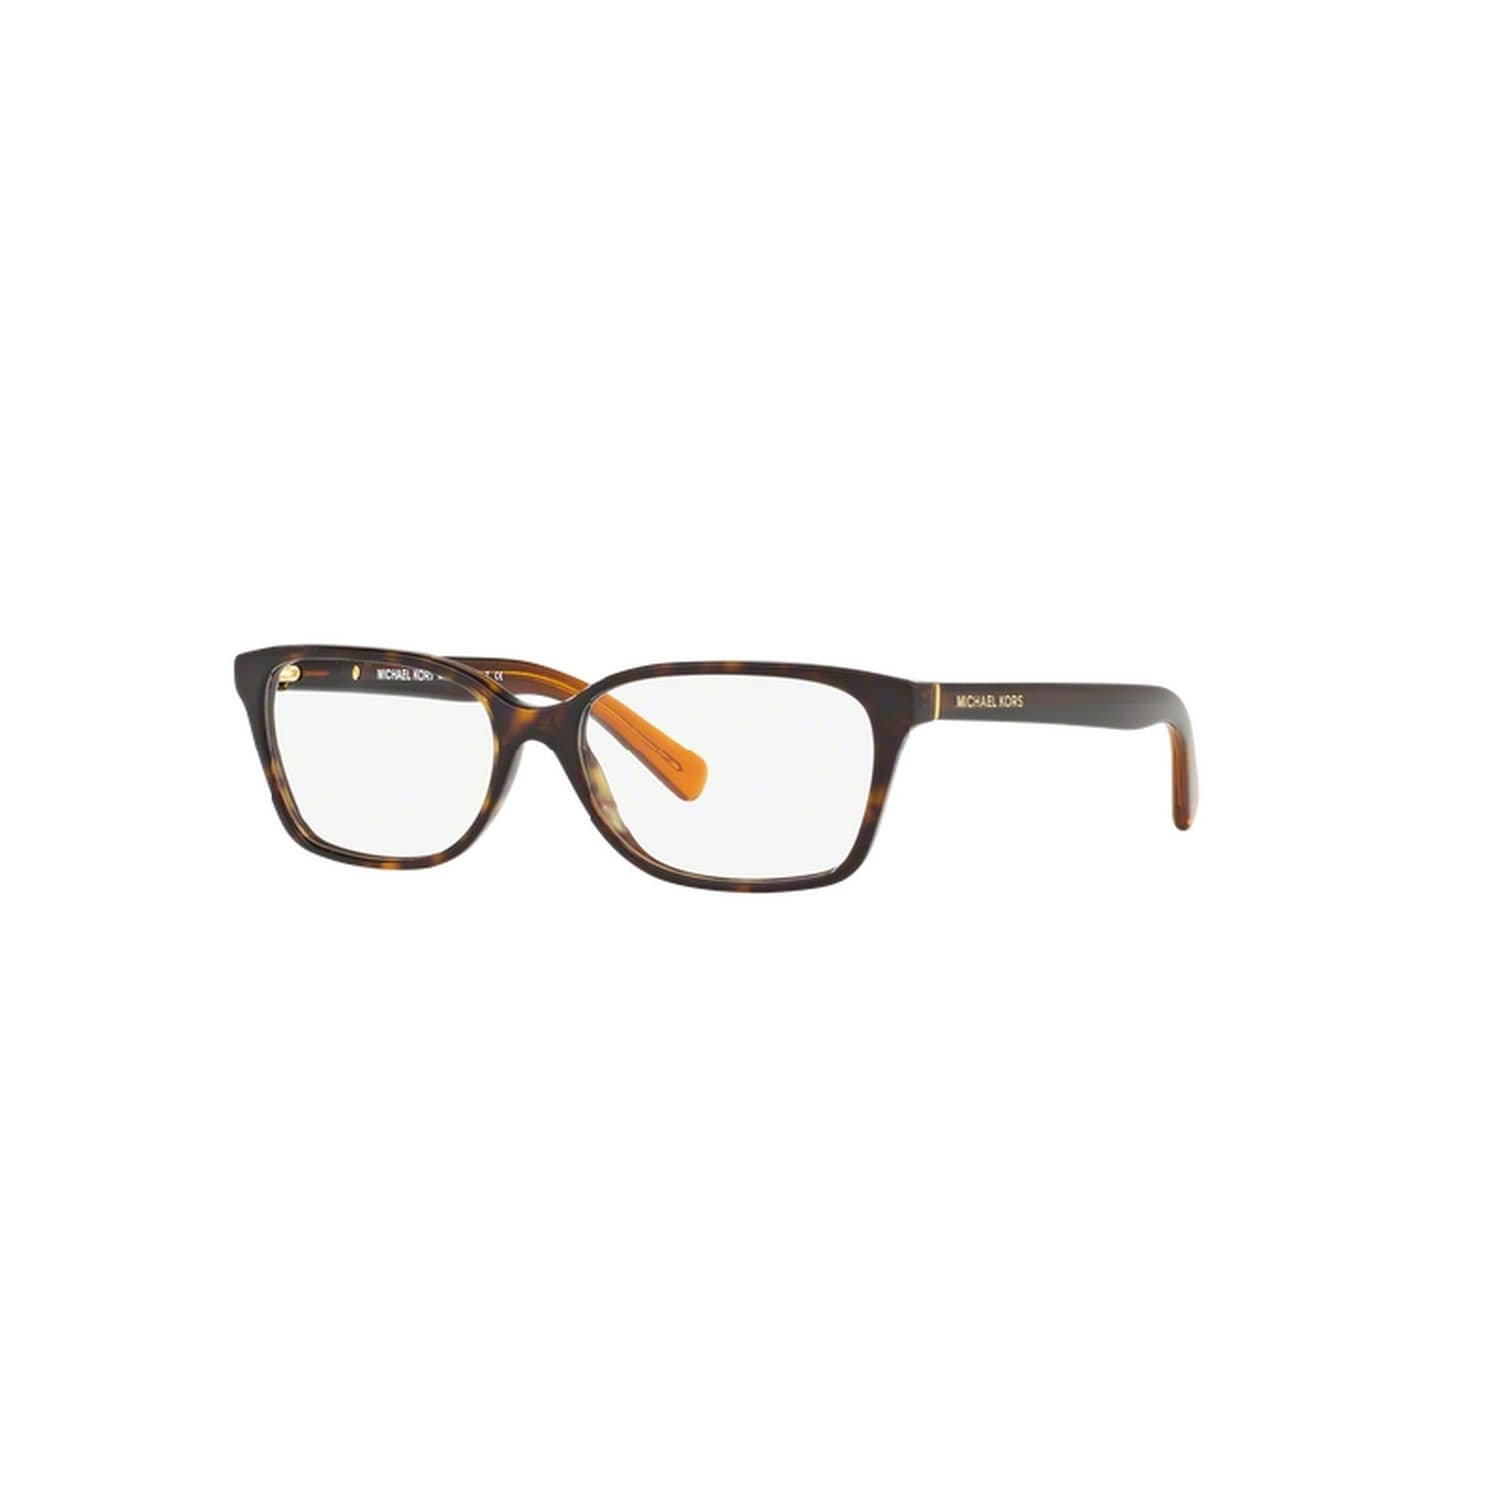 bc2d989c44e Shop Michael Kors Women s MK4039 3217 54 Rectangle Plastic Havana Clear  Eyeglasses - Free Shipping Today - Overstock.com - 14779522